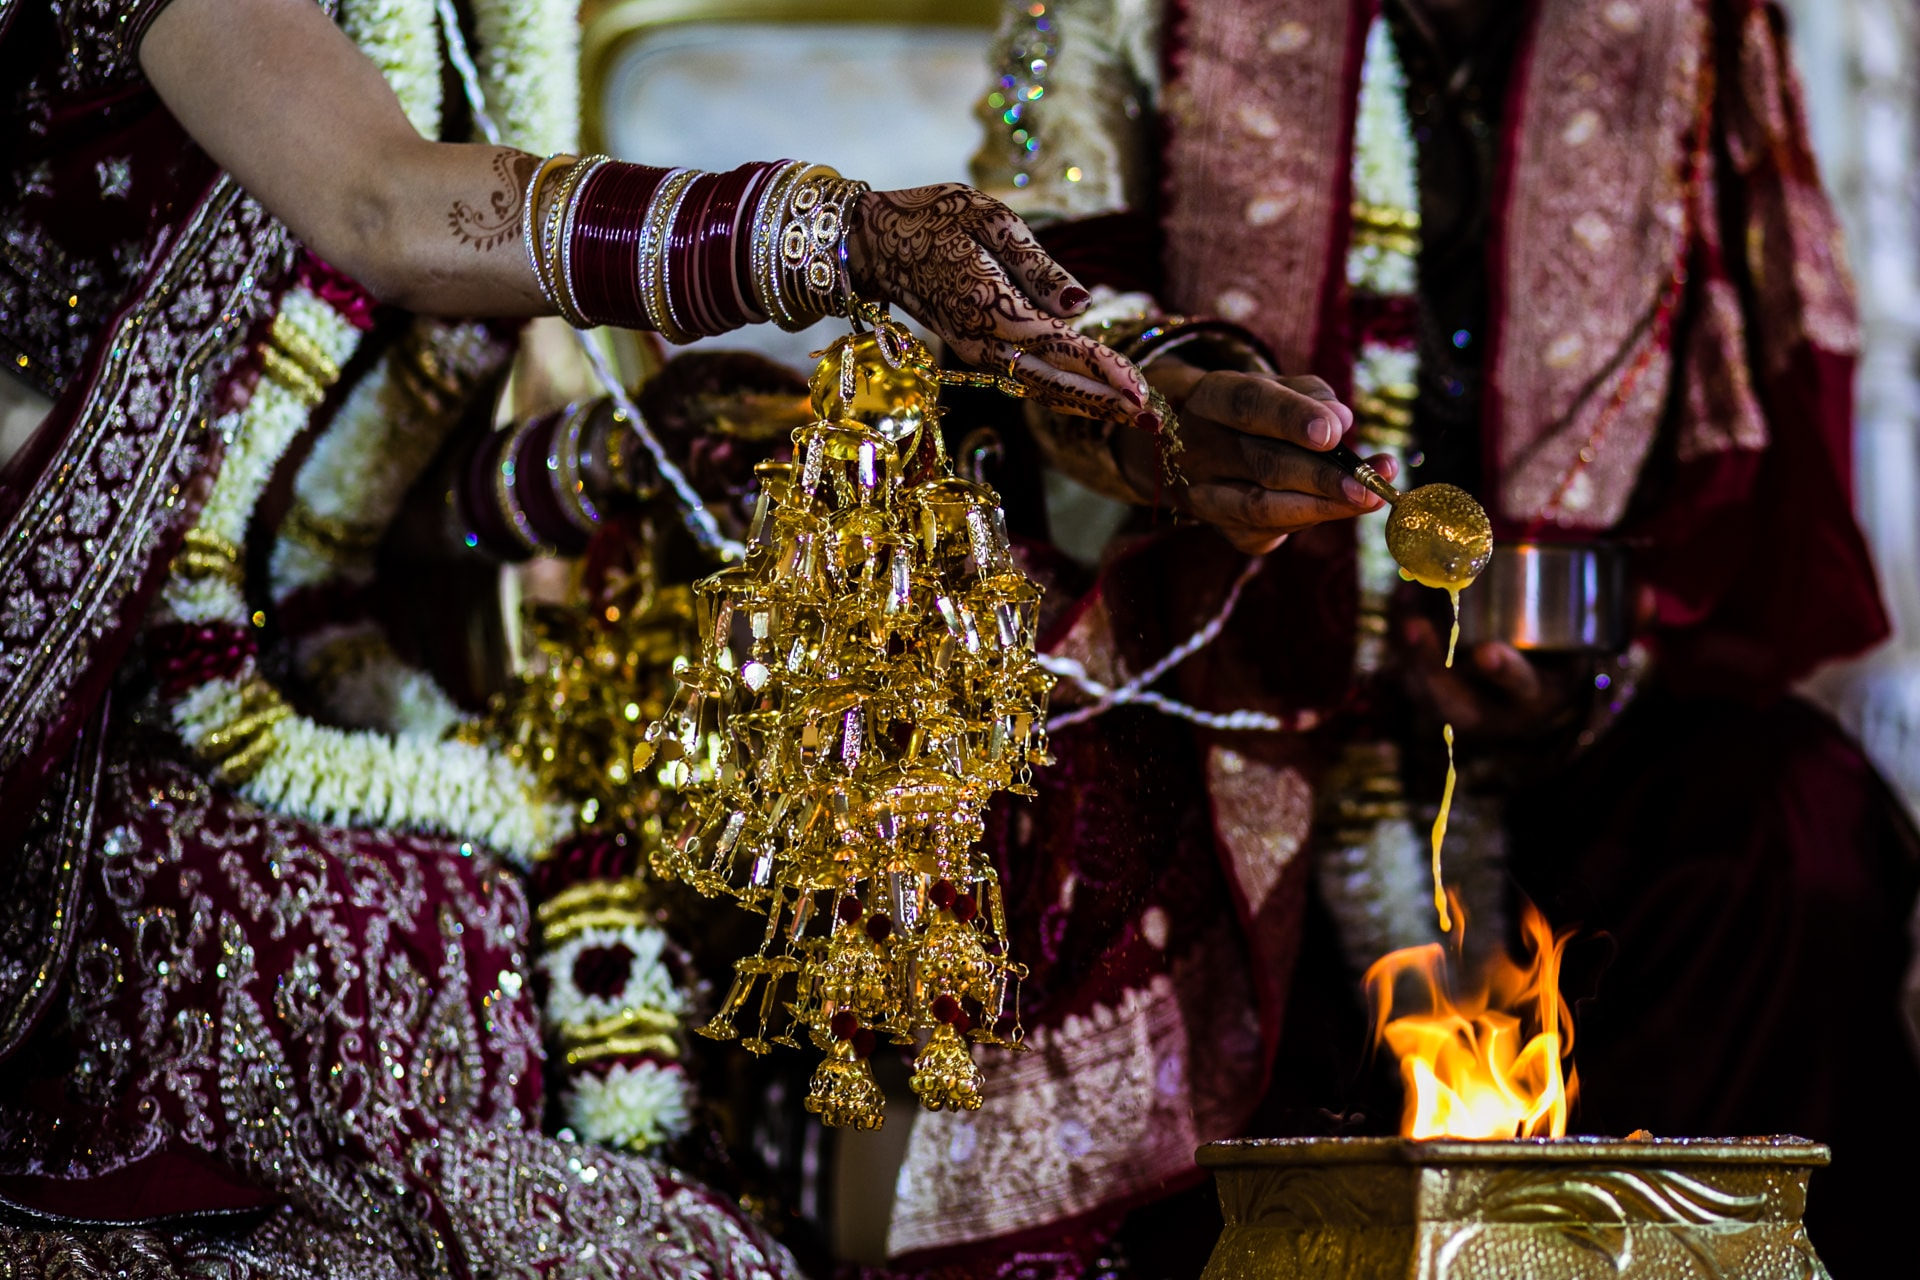 Ghee and seeds being poured into the fire during mandap ceremony